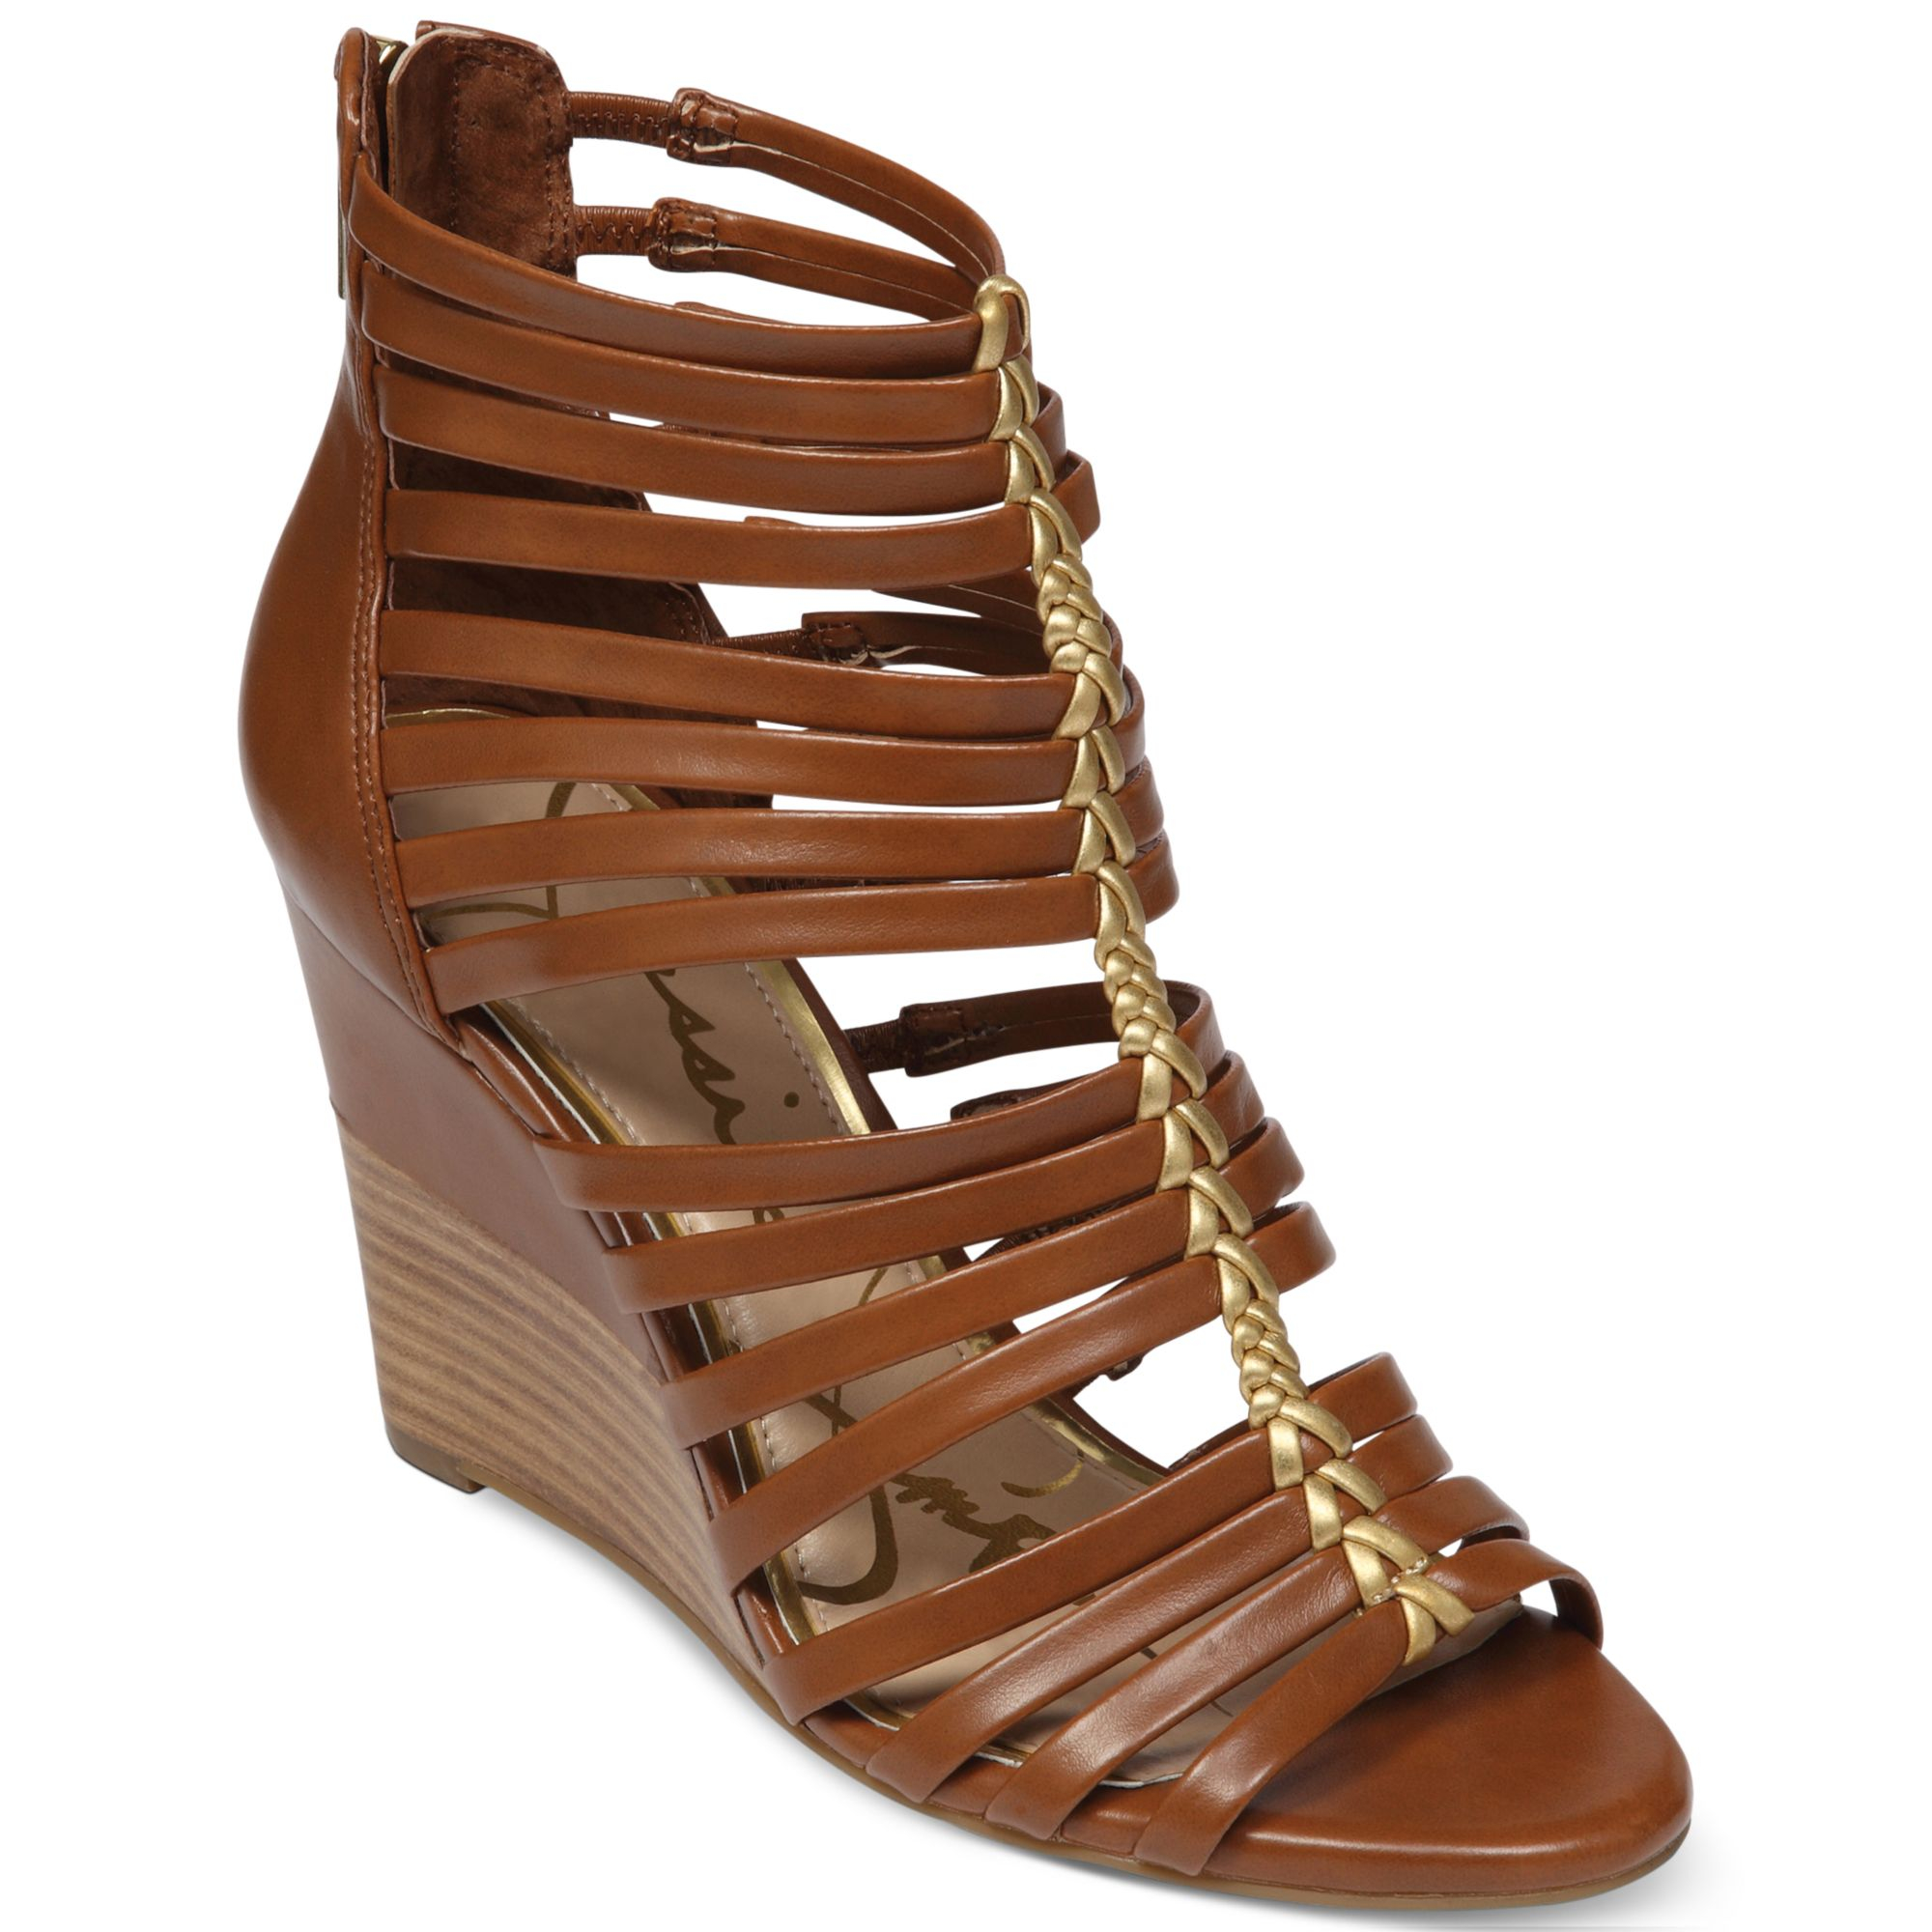 dfaf39c3a4df Lyst - Jessica Simpson Miccy Wedge Gladiator Sandals in Brown